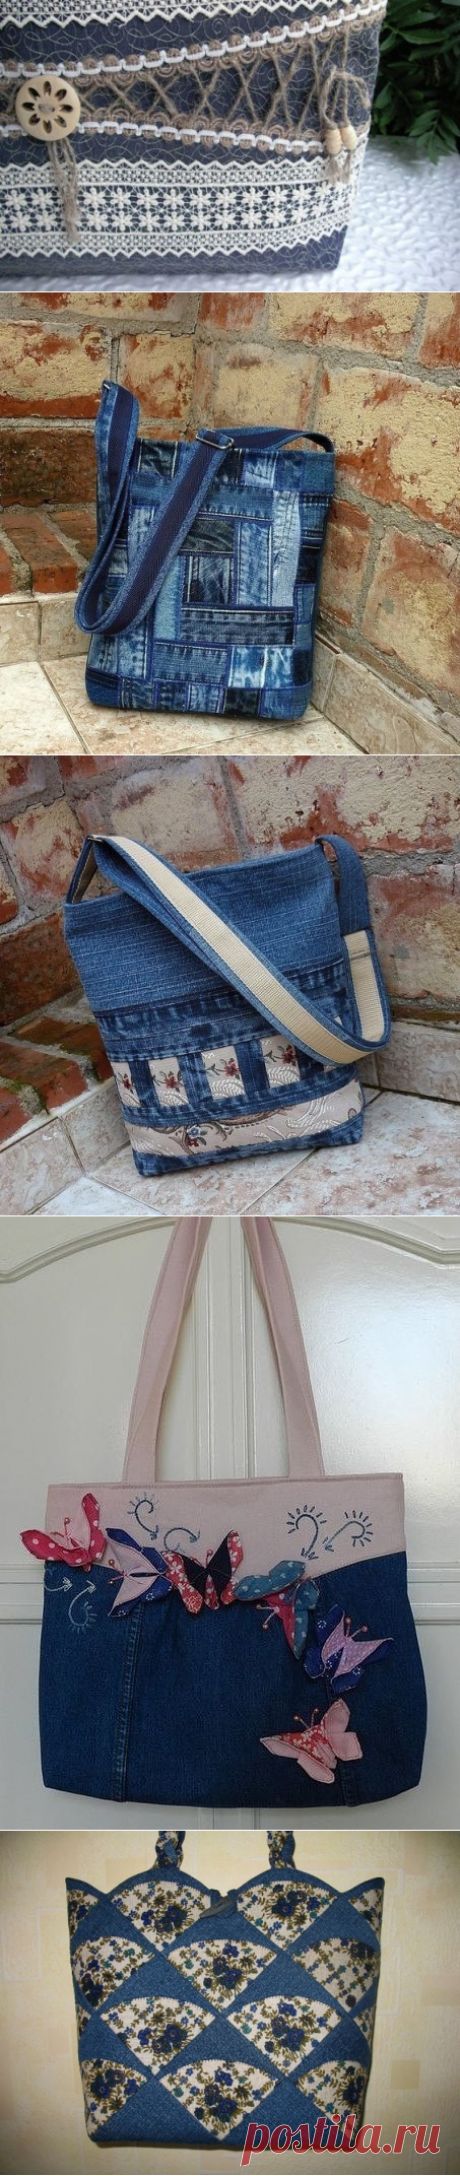 Jeans handbags the hands — ideas for inspiration